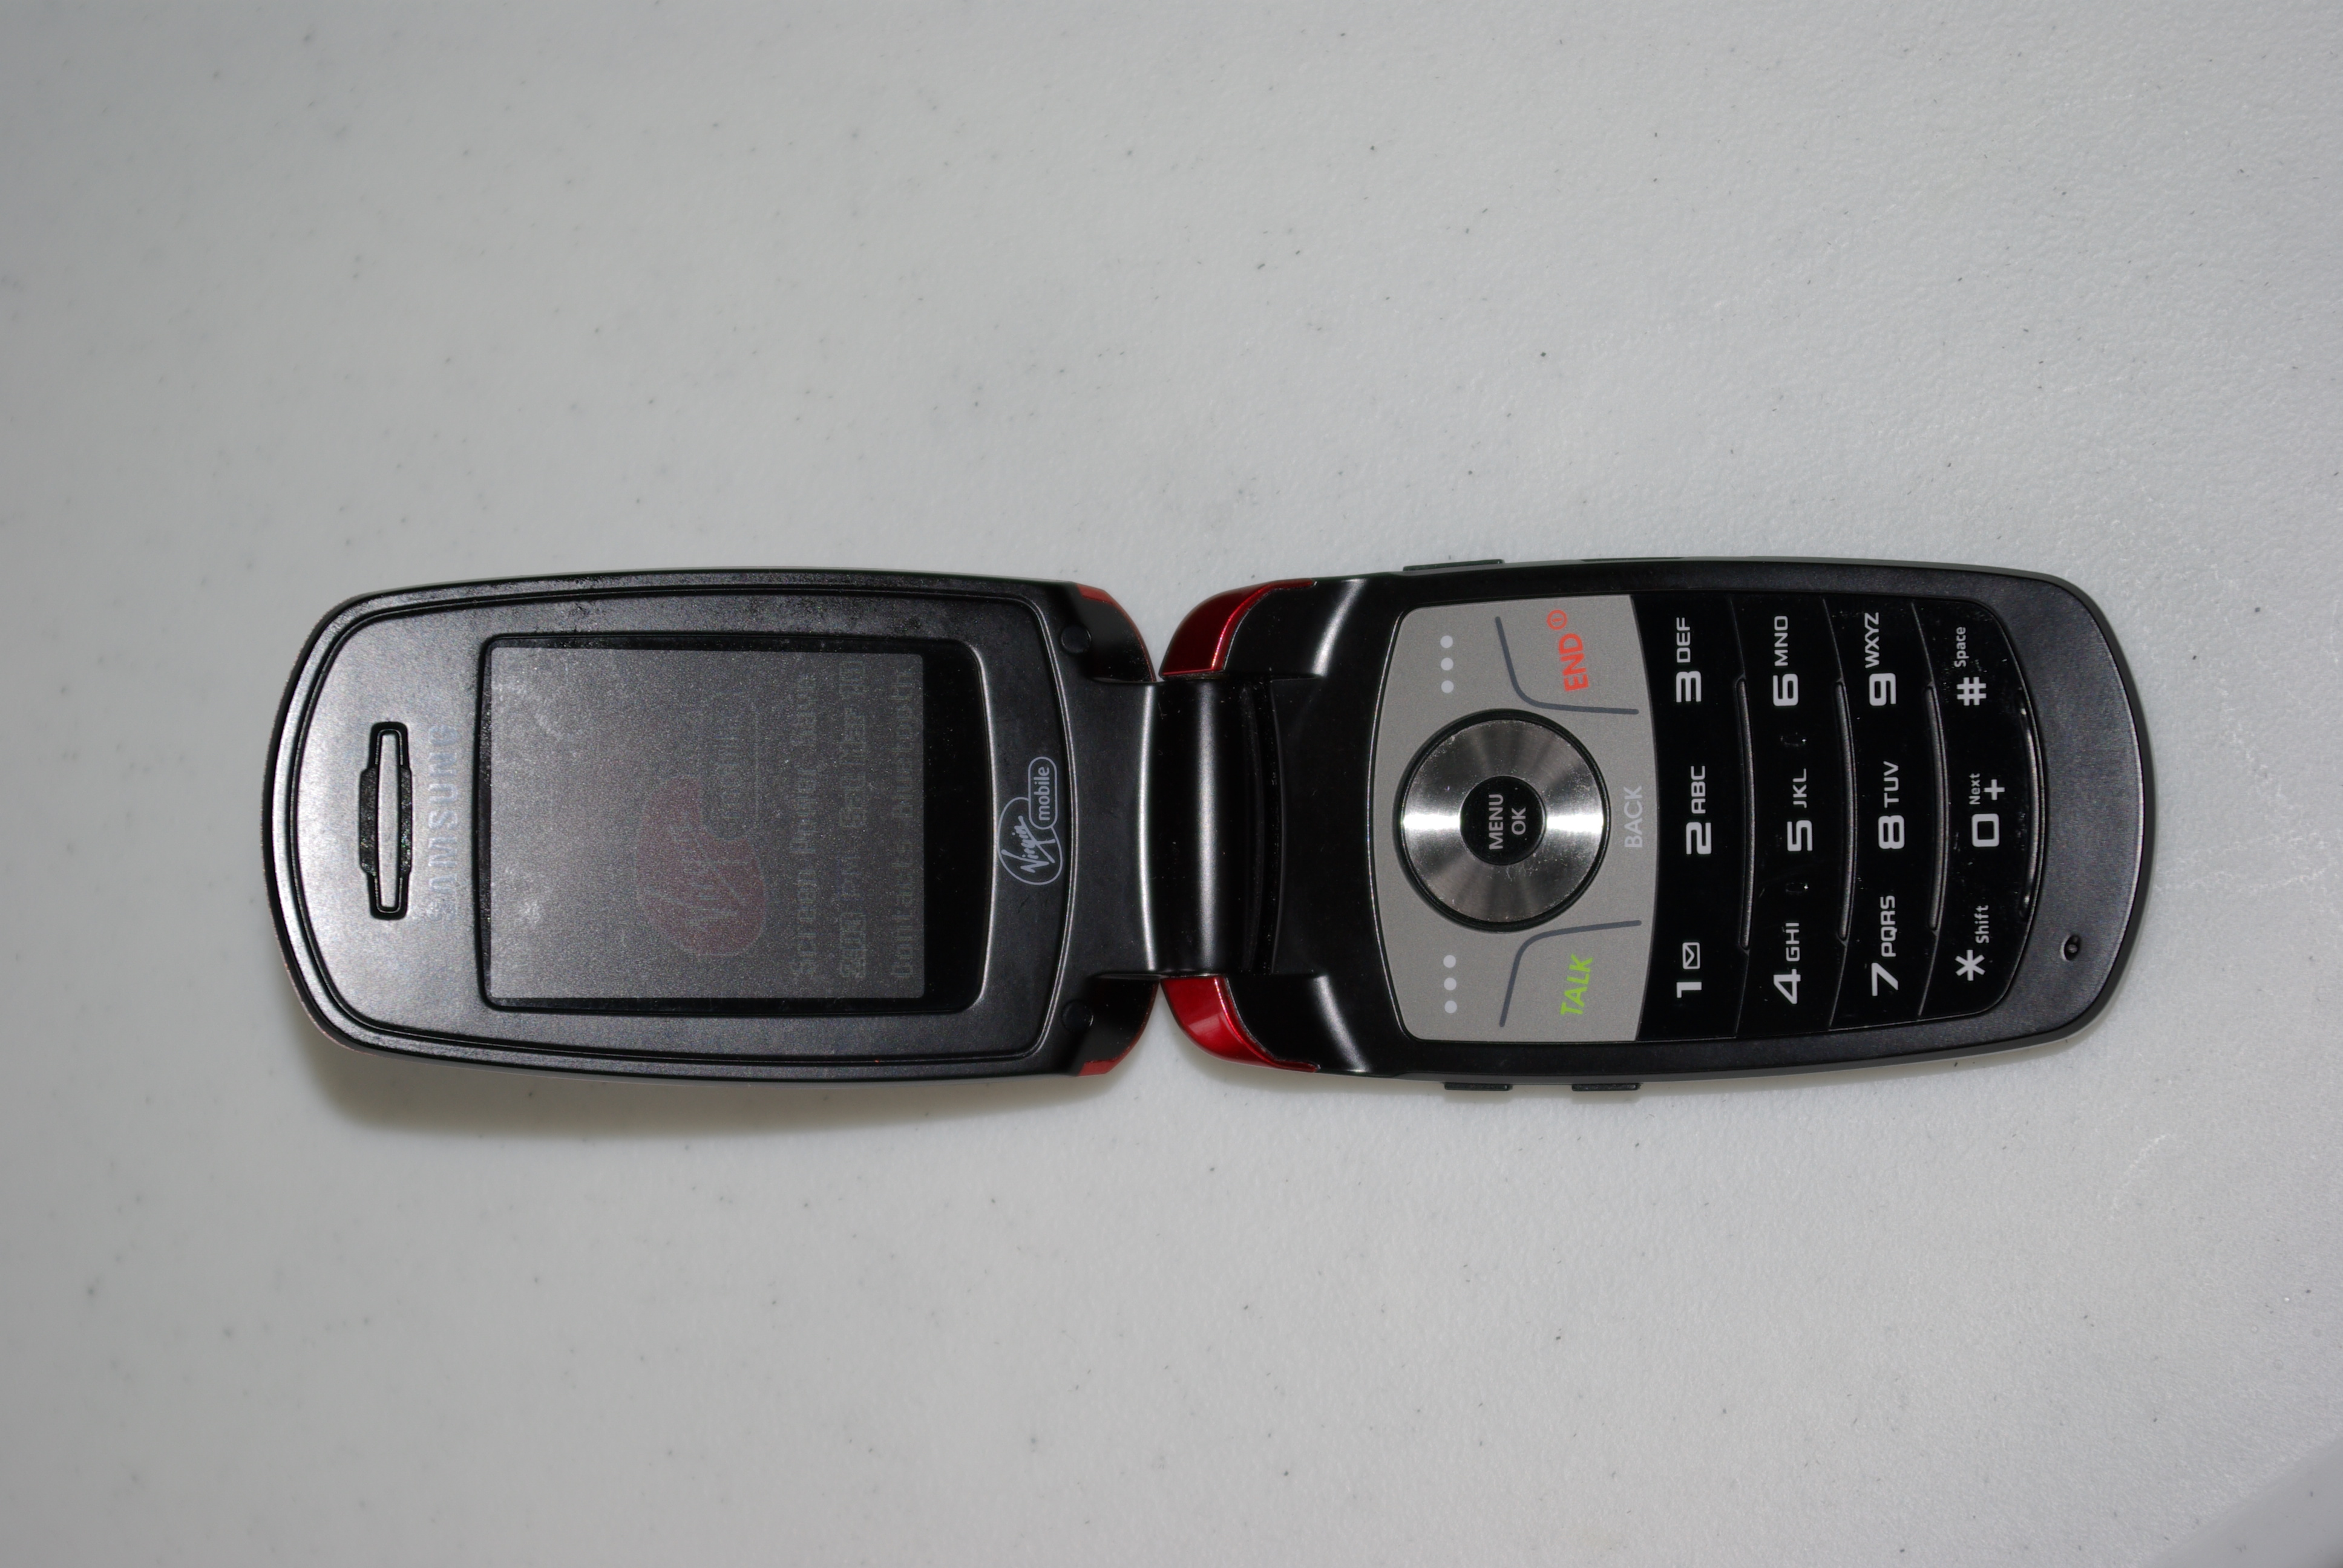 SAMSUNG SPH M300 CELL PHONE